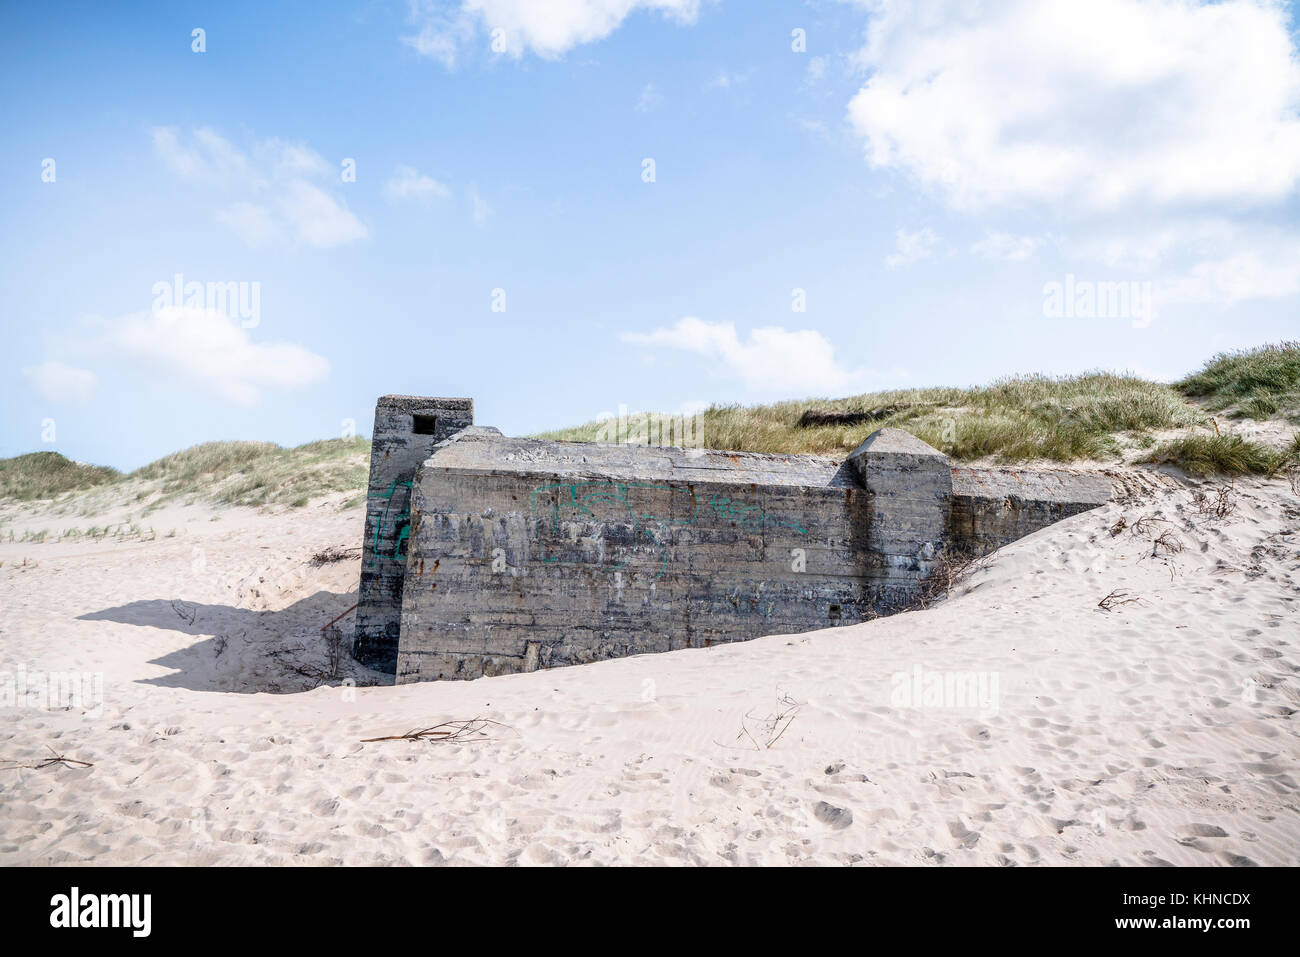 German bunker from the second world war on a danish beach in the summer - Stock Image